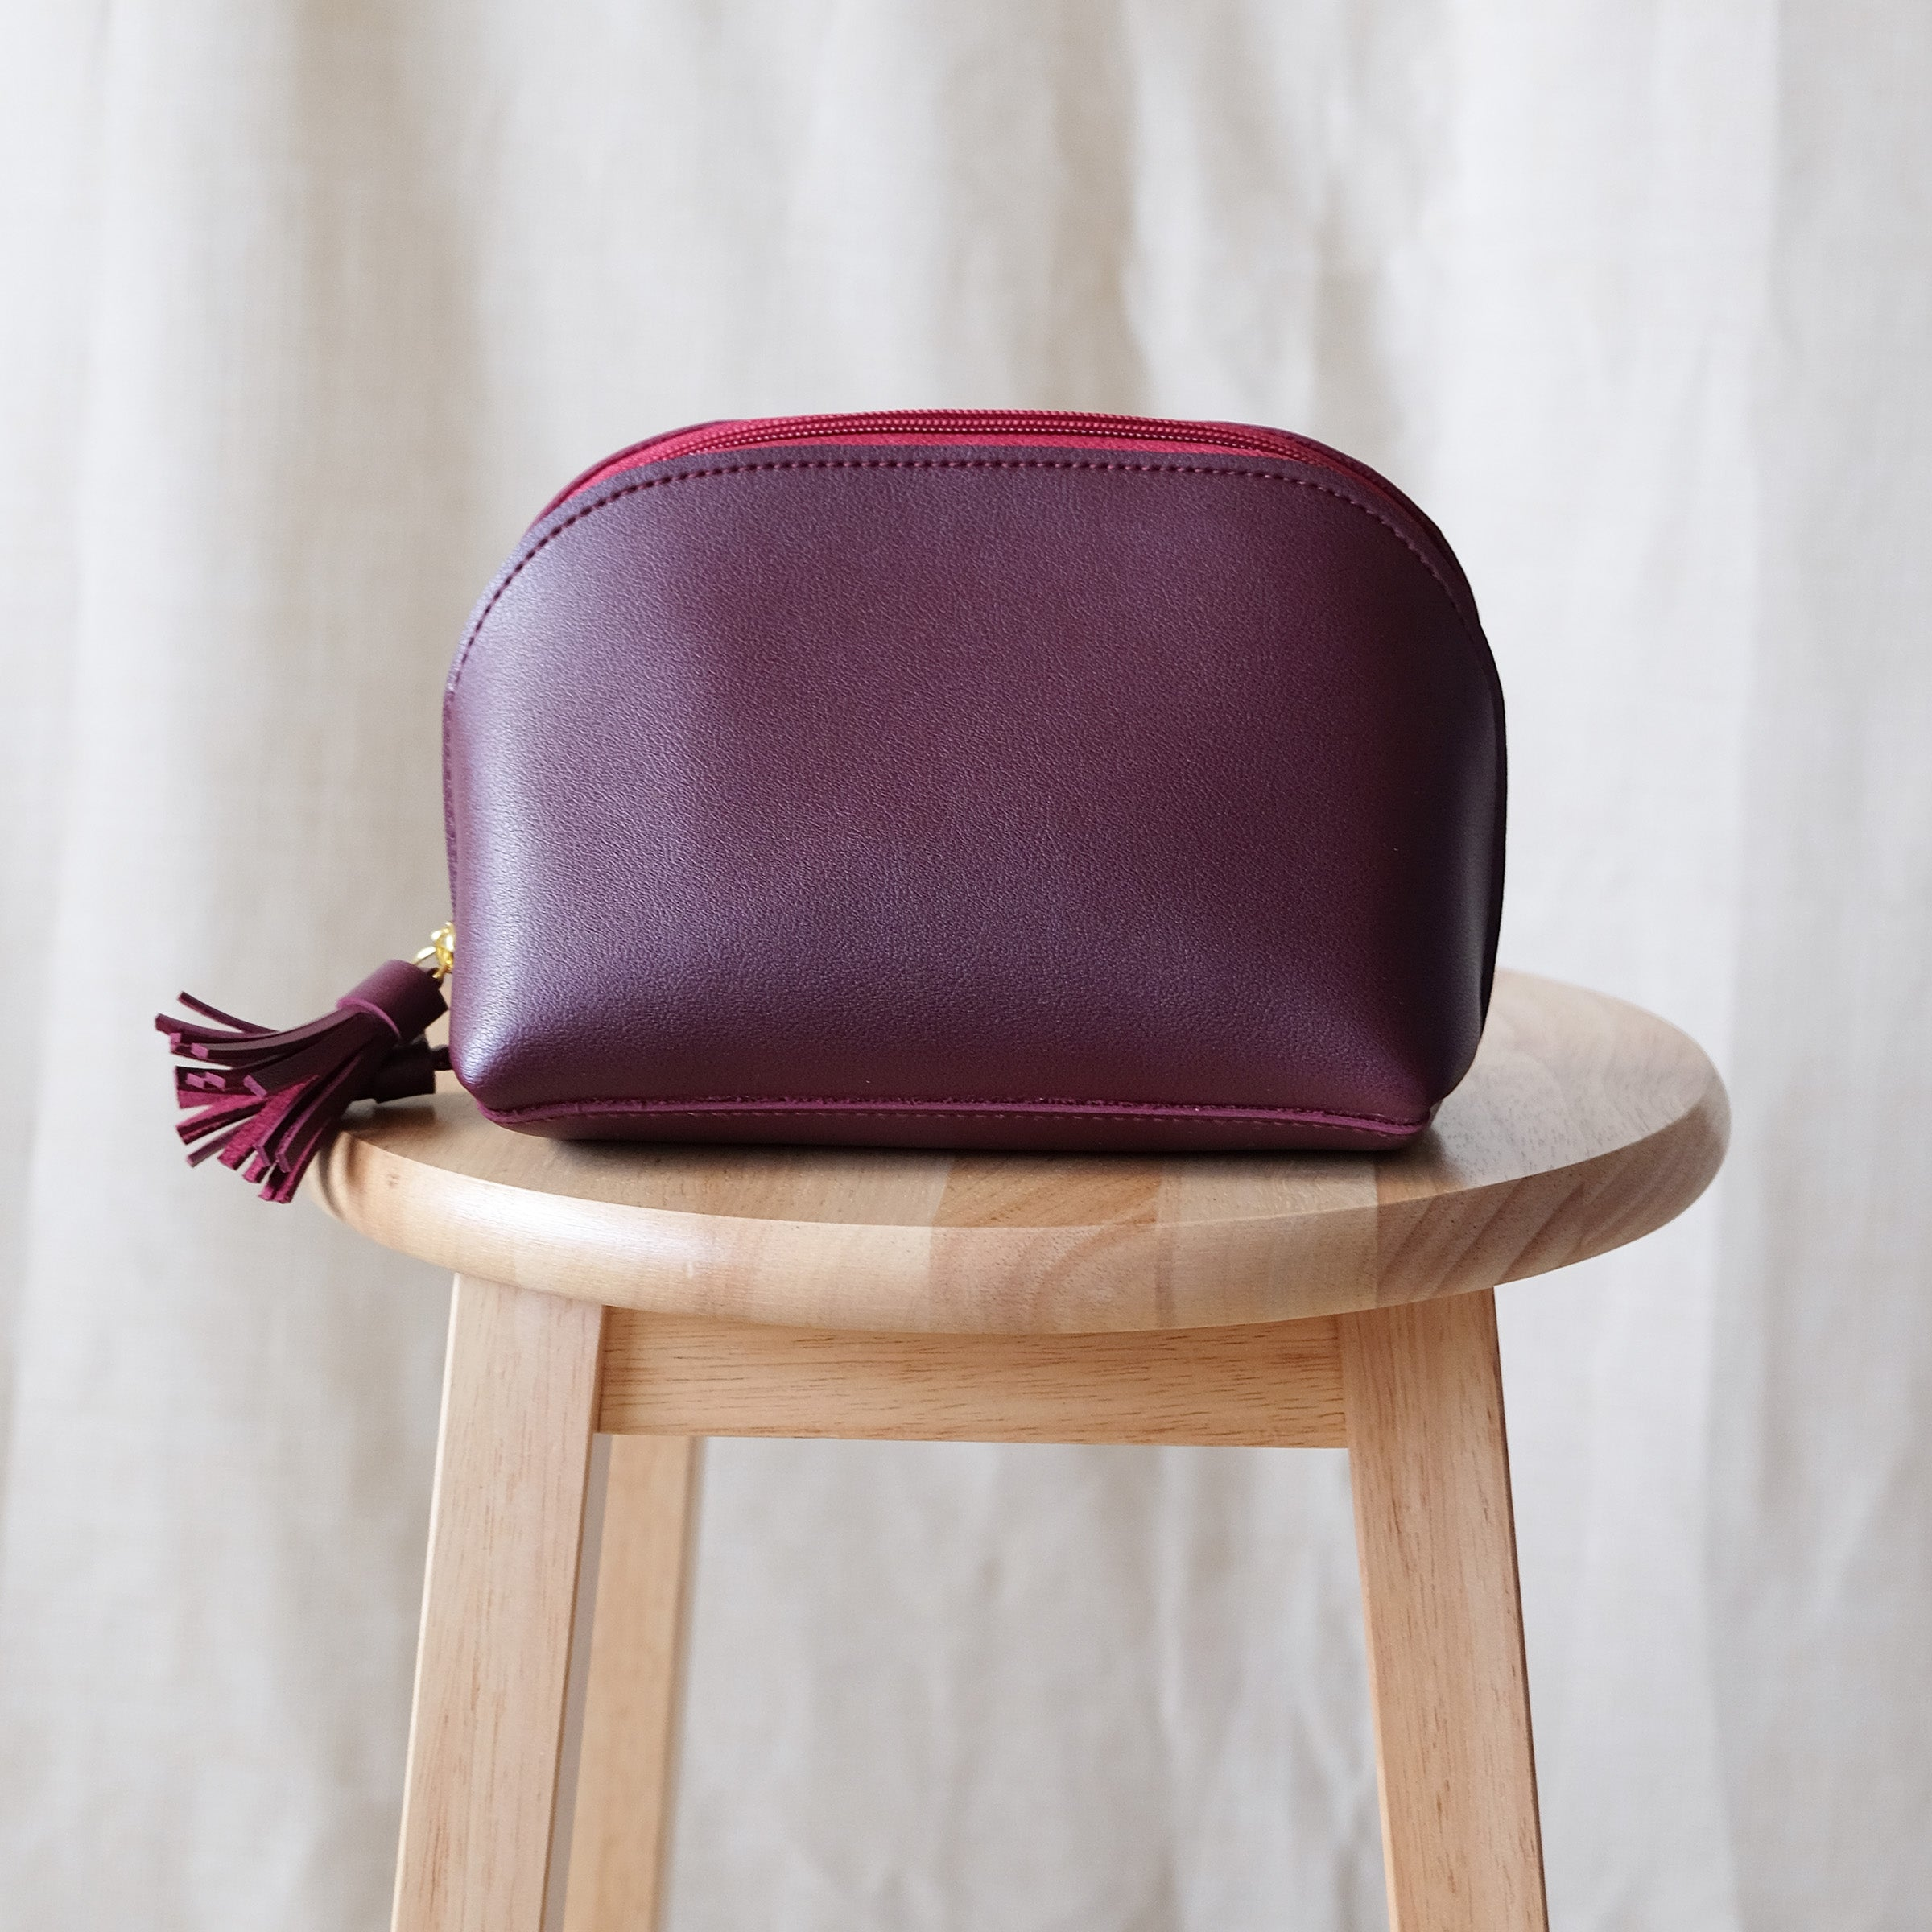 Clamshell Utility Kit in Wine